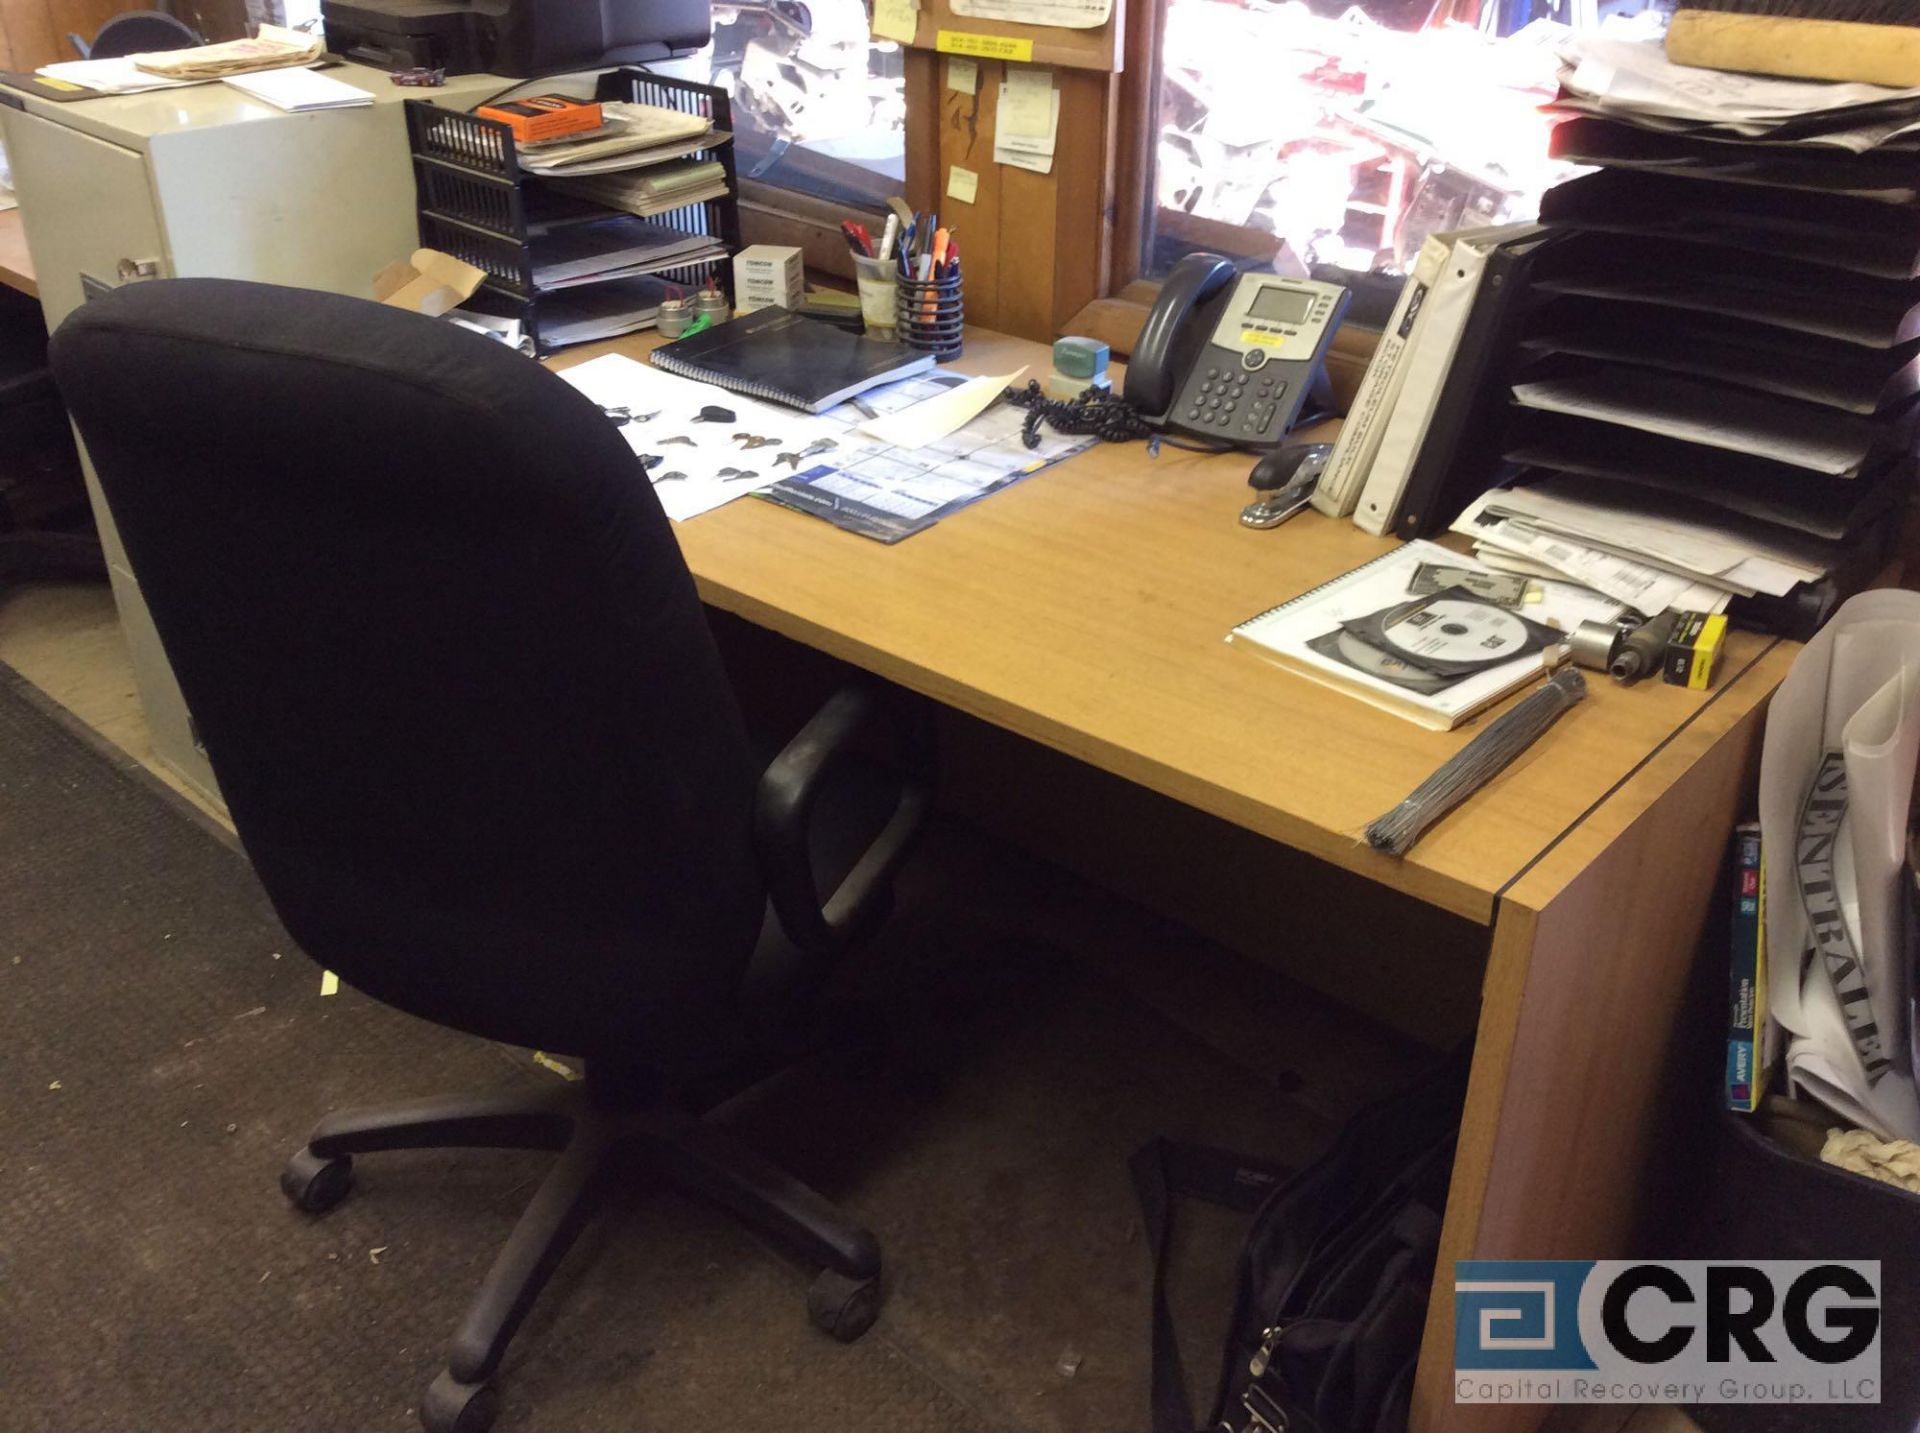 Lot 501 - Lot of office furniture including (3) desks, (3) chairs, 3-door flame proof file cabinet, (4) blue